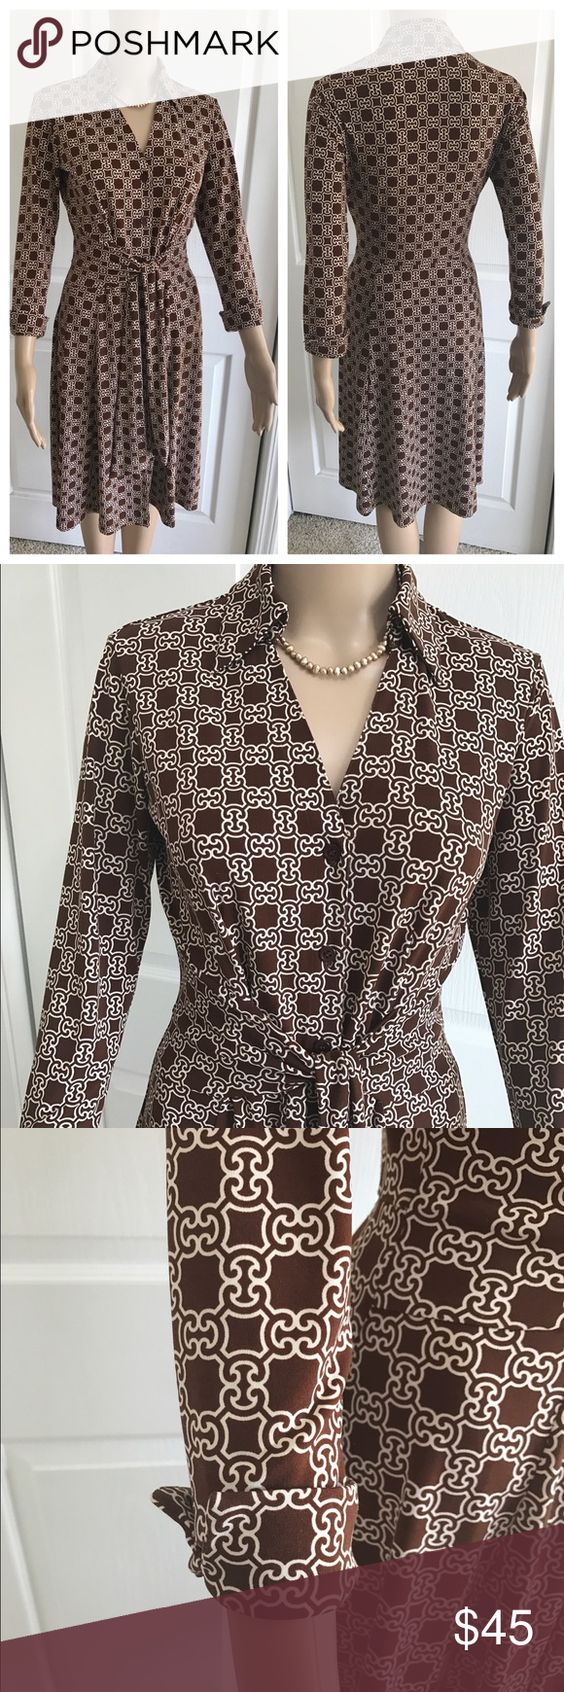 Donna Morgan Faux Wrap Dress Beautiful Career Dress. Brown and white design with tie waist. Bought at Nordstrom and only wore once. Super fun piece. Necklace not included. Donna Morgan Dresses Long Sleeve